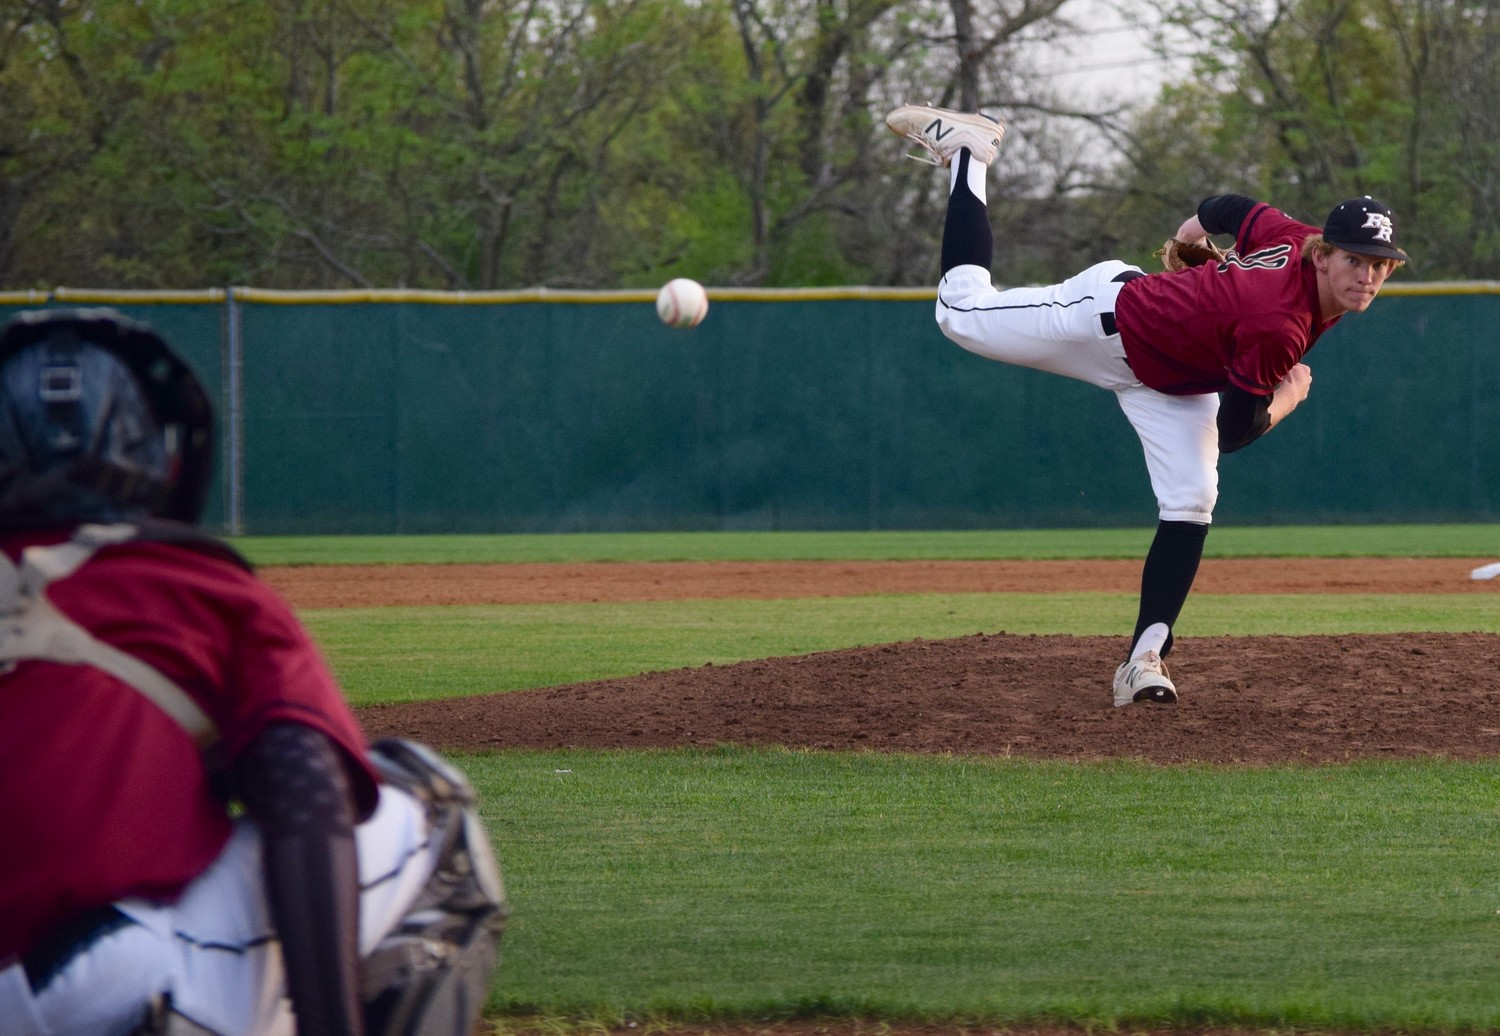 Hayden Thomas pitched a complete game shutout with 12 strikeouts as Rouse beat Cedar Park 4-0 on Friday night.